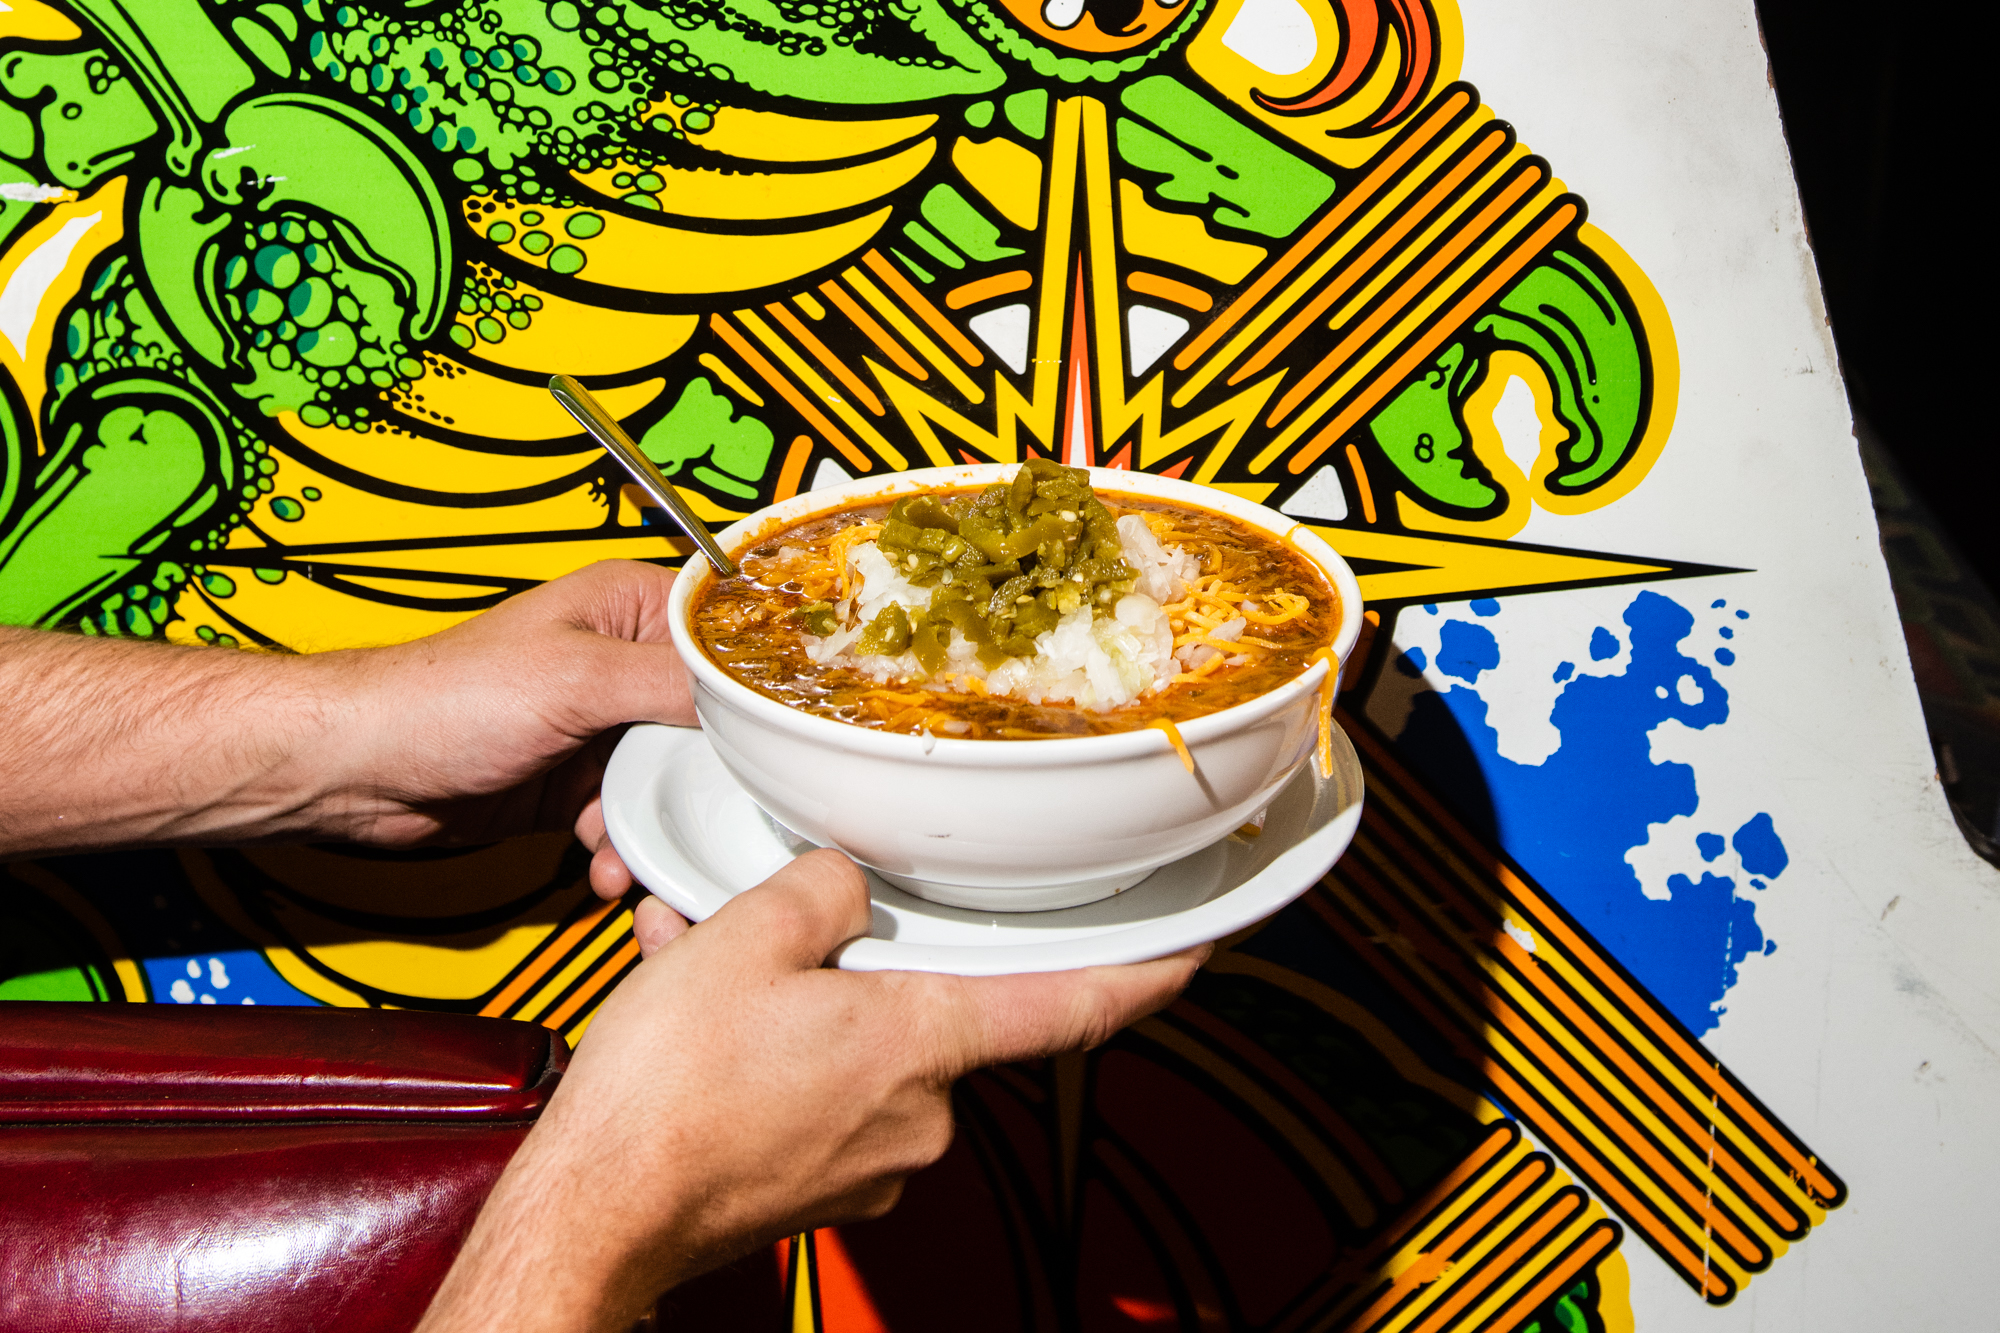 Since 1922, this family owned establishment has been giving the people what they want. Everyone from Guy Fieri to the folks at the Travel Channel have stepped through the parlor's hallowed doors. (Image: Chona Kasinger / Seattle Refined)